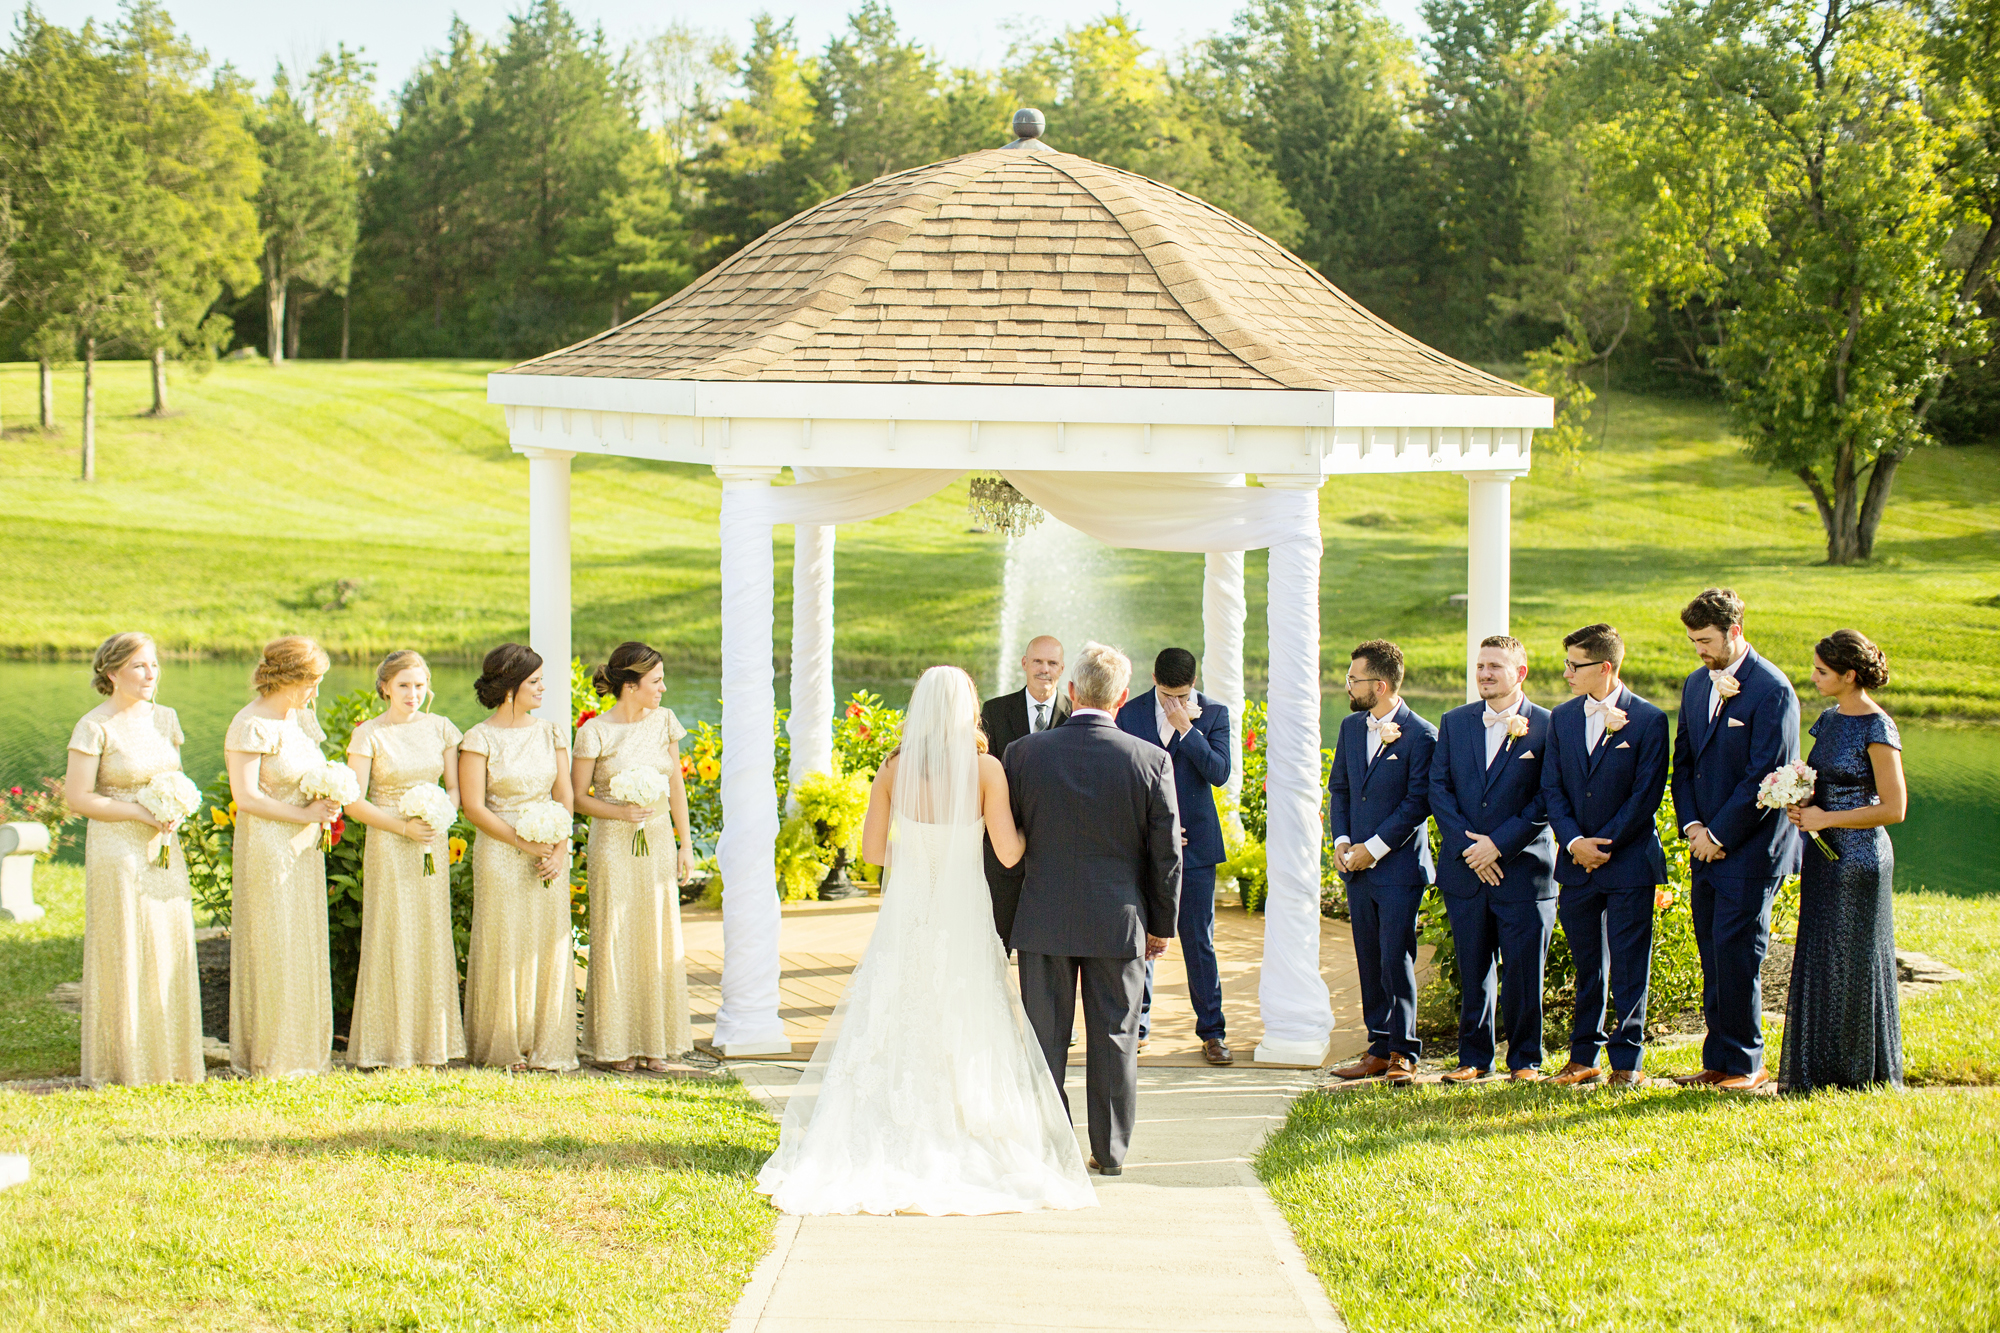 Seriously_Sabrina_Photography_Dayton_Ohio_Great_Gatsby_Wedding_Cedar_Springs_Pavillion_Harper_45.jpg